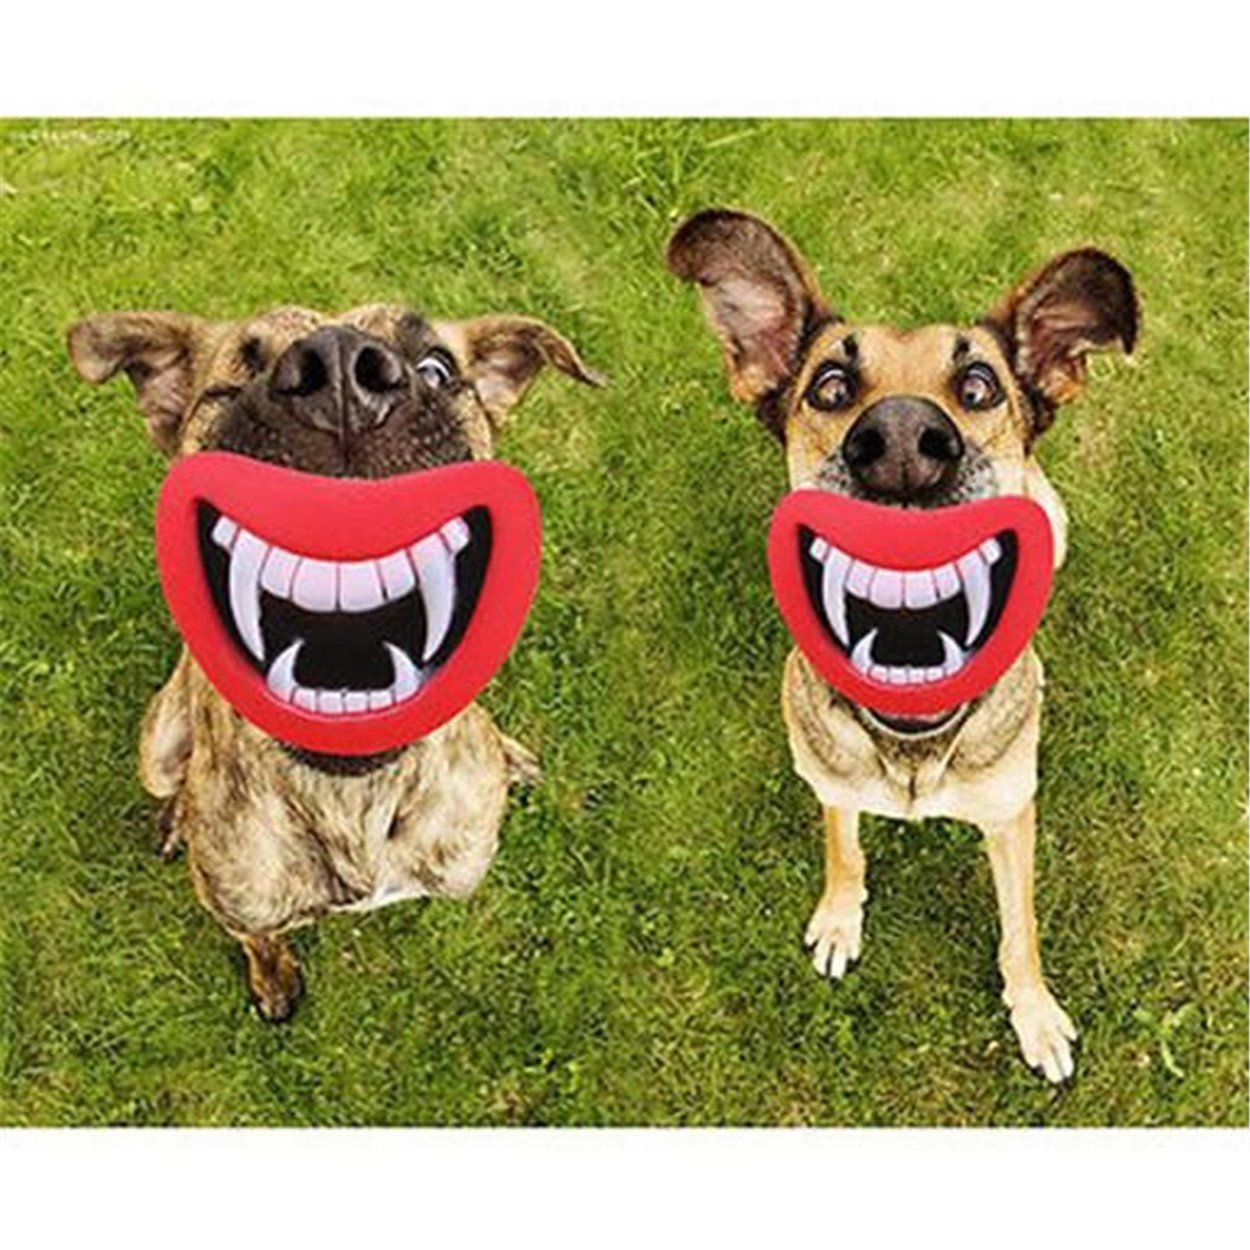 Puppy Dog Toys Big Red Lip Rubber Toy Dog Toy Lips For Pet Dog